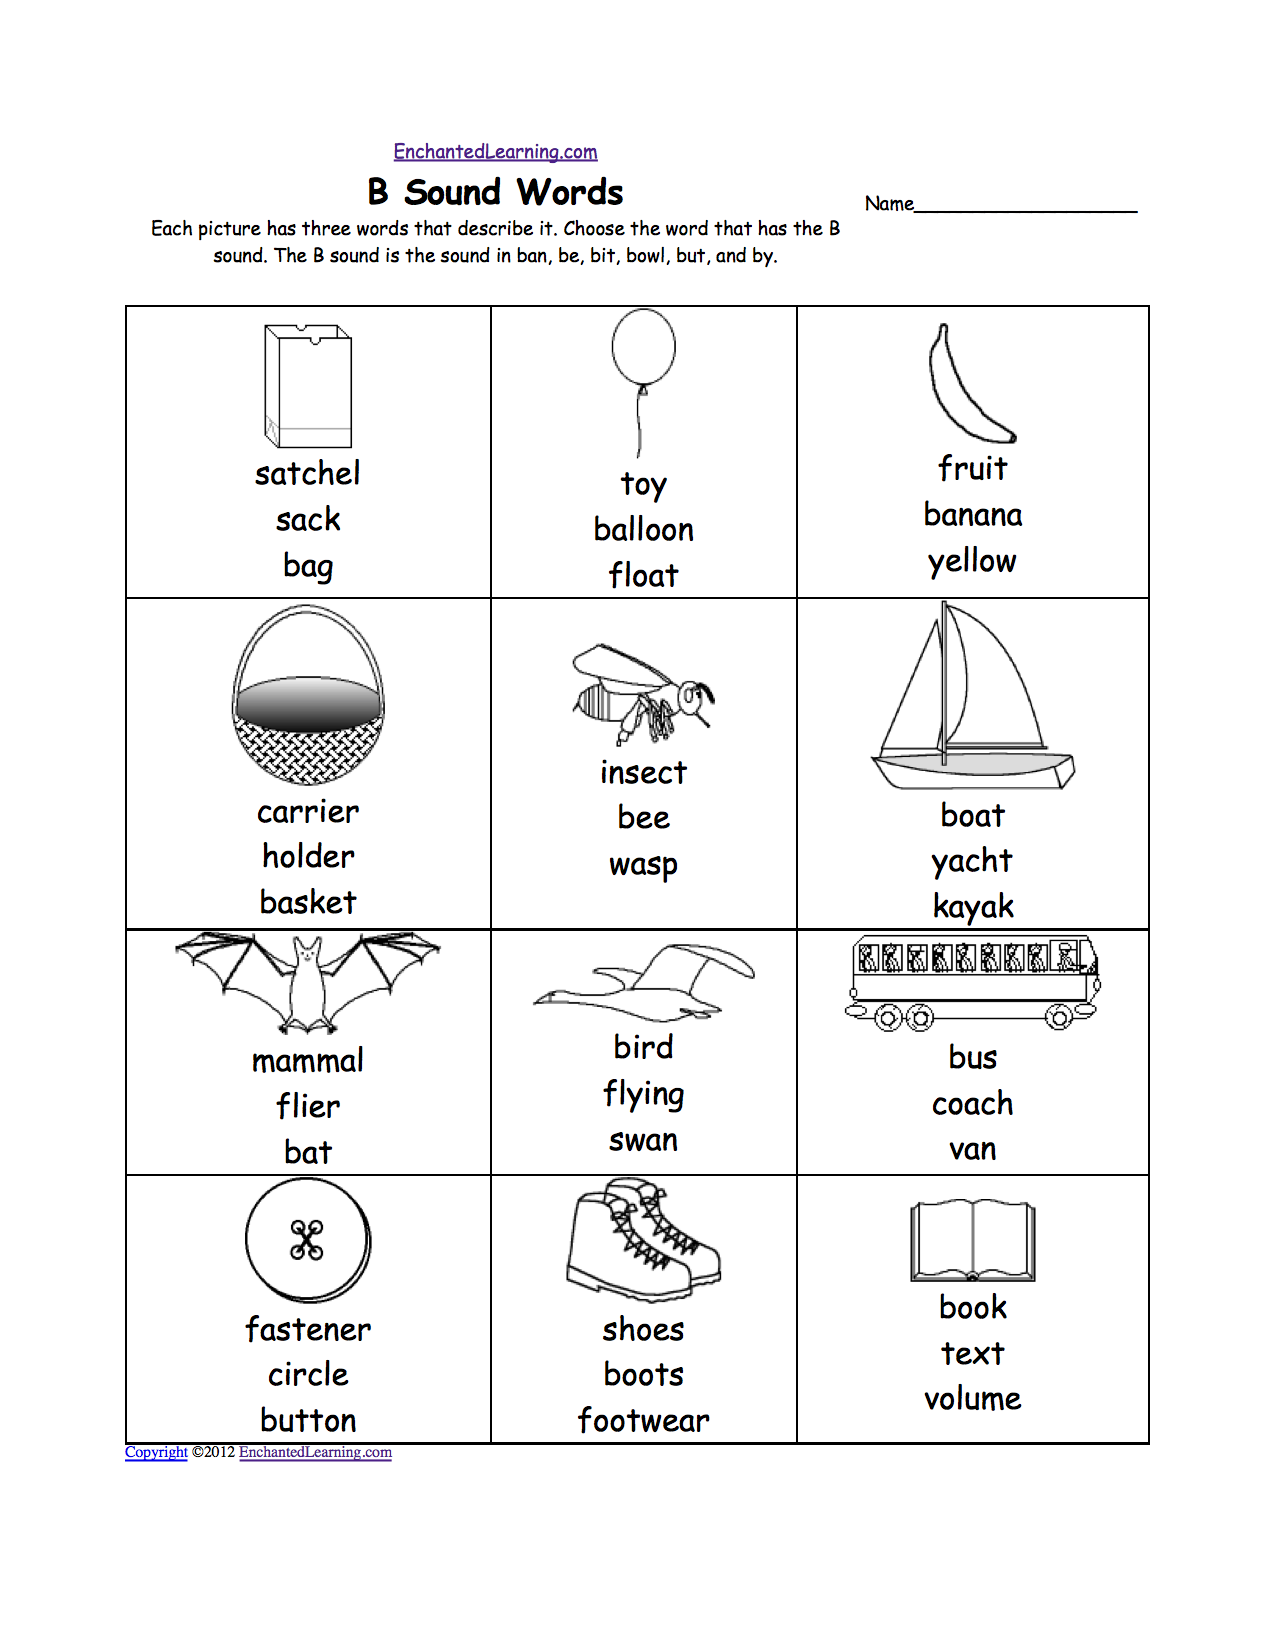 Weirdmailus  Winning Phonics Worksheets Multiple Choice Worksheets To Print  With Great Quotbquot Sound Phonics Worksheet Multiple Choice Each Picture Has Three Words That Describe It Choose The Word That Has A Quotbquot Sound The Quotbquot Sound Is The Sound  With Endearing Addition Worksheet Maker Also Physical Change Chemical Change Worksheet In Addition Esl Fun Worksheets And Semantic Links Worksheets As Well As Tropism Worksheets Additionally Solving Quadratic Equation Worksheets From Enchantedlearningcom With Weirdmailus  Great Phonics Worksheets Multiple Choice Worksheets To Print  With Endearing Quotbquot Sound Phonics Worksheet Multiple Choice Each Picture Has Three Words That Describe It Choose The Word That Has A Quotbquot Sound The Quotbquot Sound Is The Sound  And Winning Addition Worksheet Maker Also Physical Change Chemical Change Worksheet In Addition Esl Fun Worksheets From Enchantedlearningcom